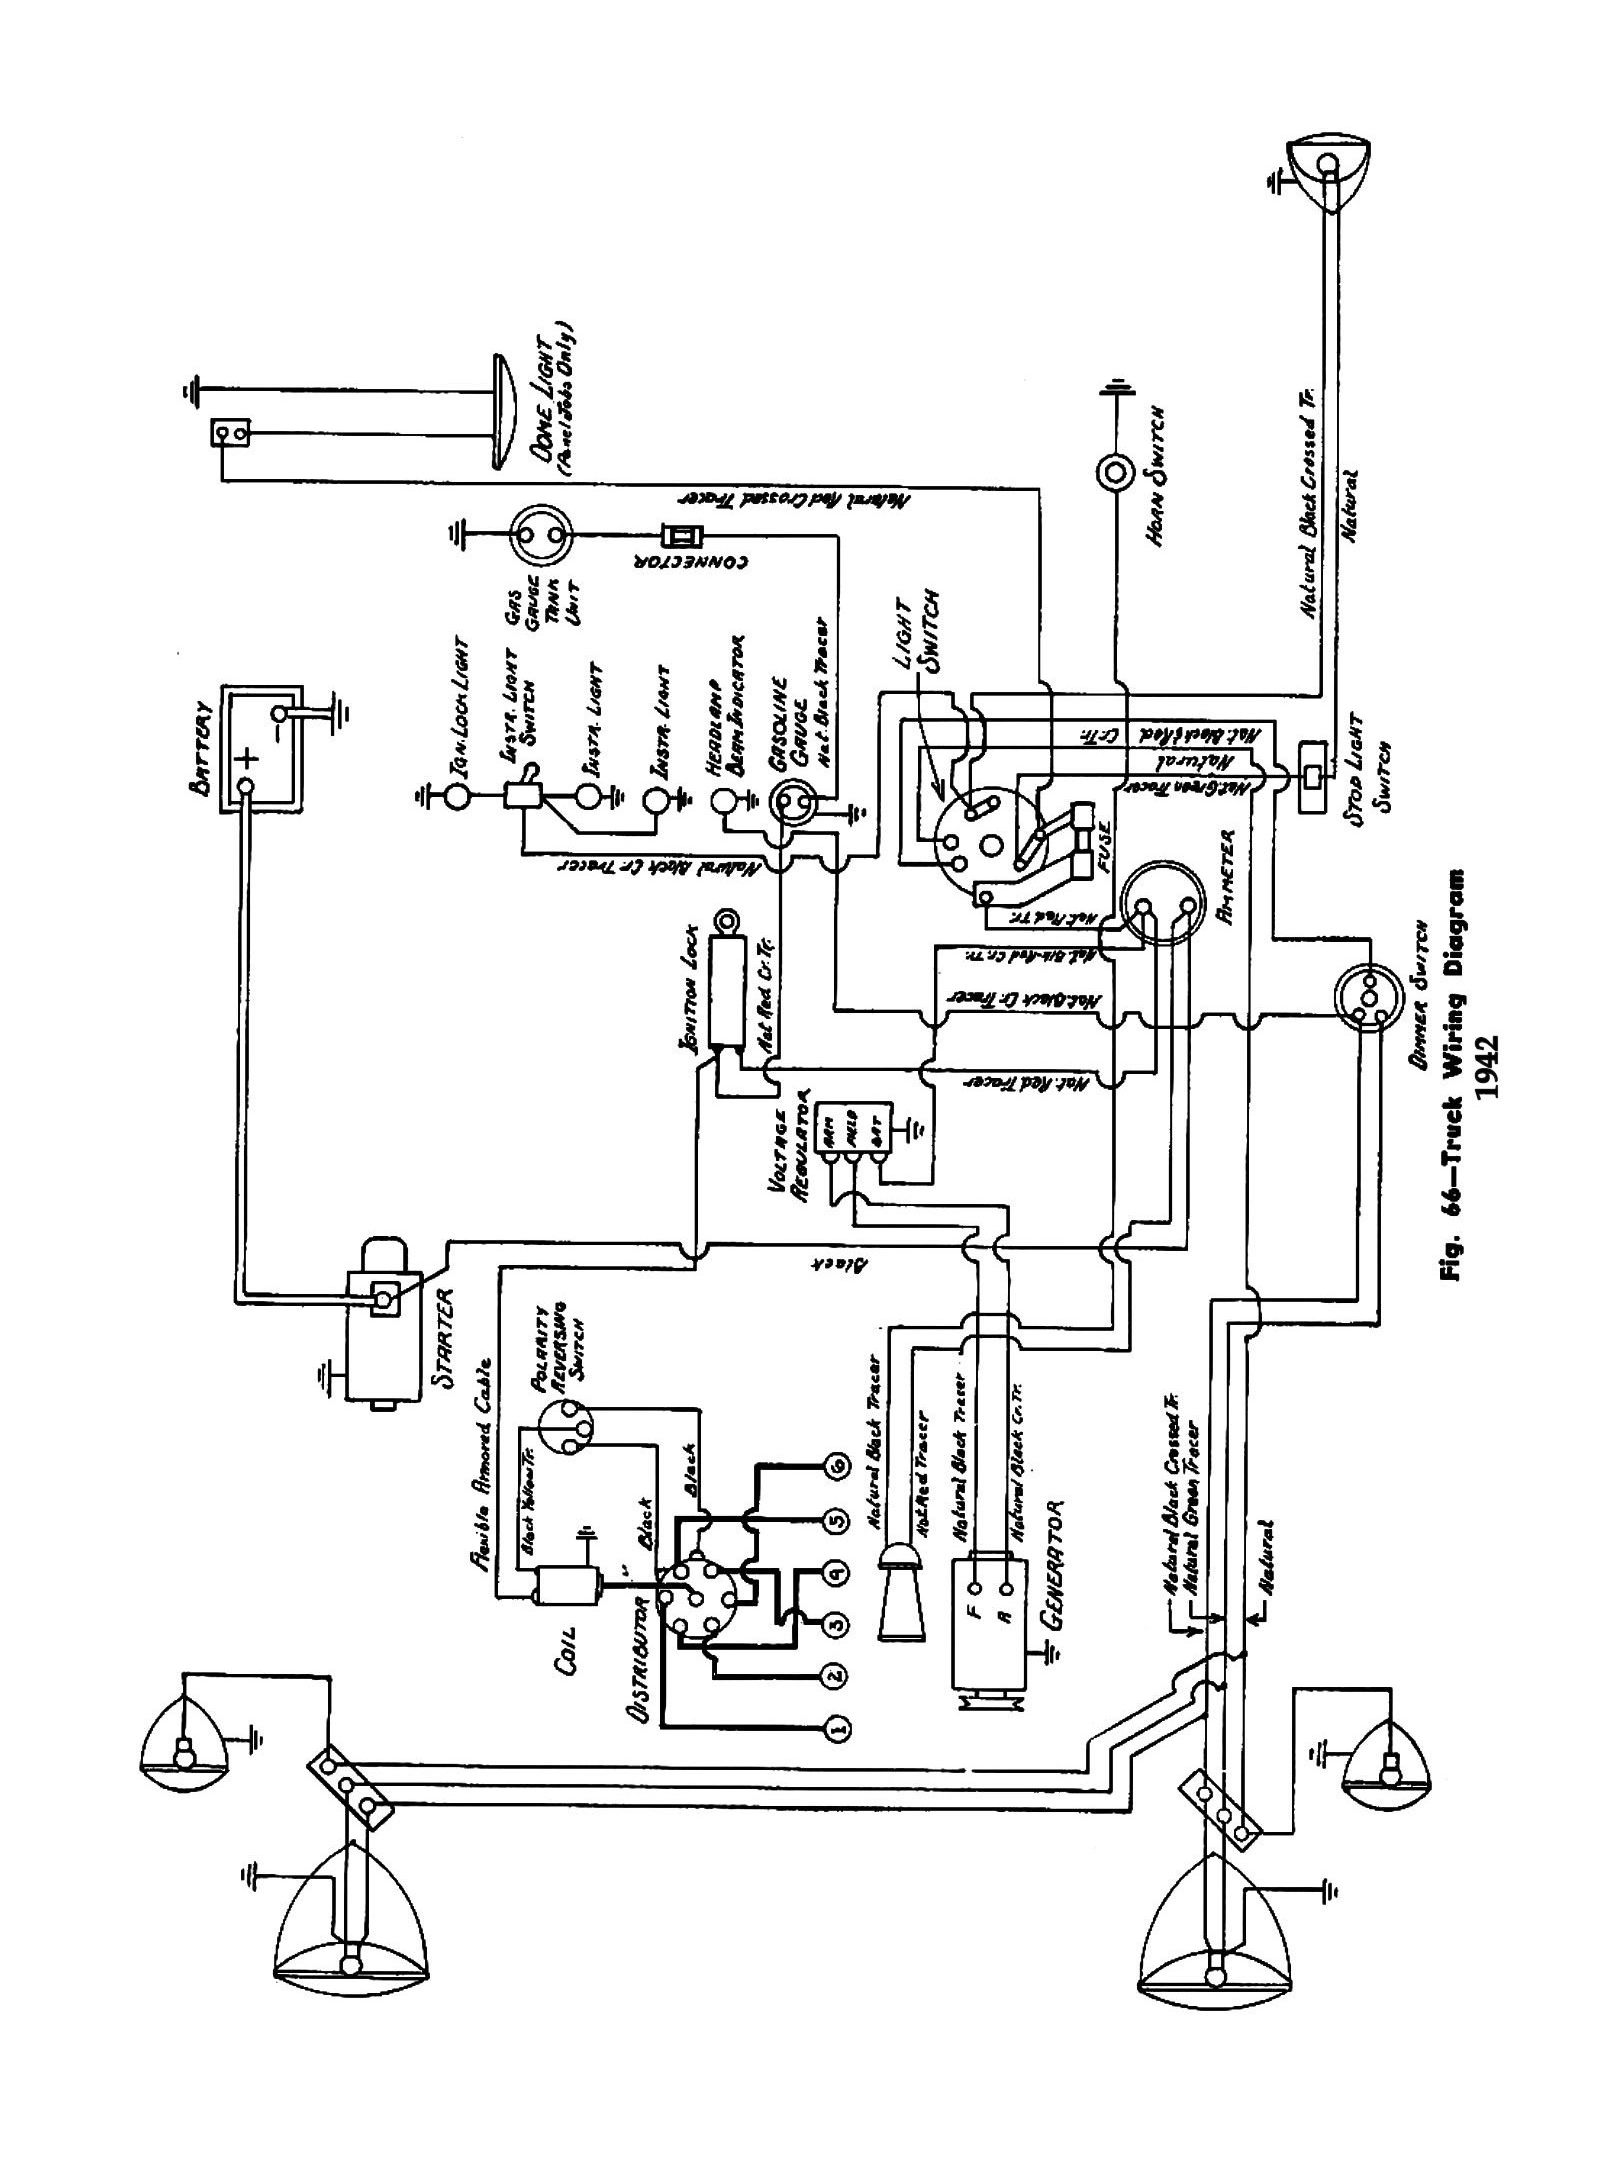 1942 chevy wiring diagram - wiring diagrams relax sum-lay - sum-lay.quado.it  sum-lay.quado.it